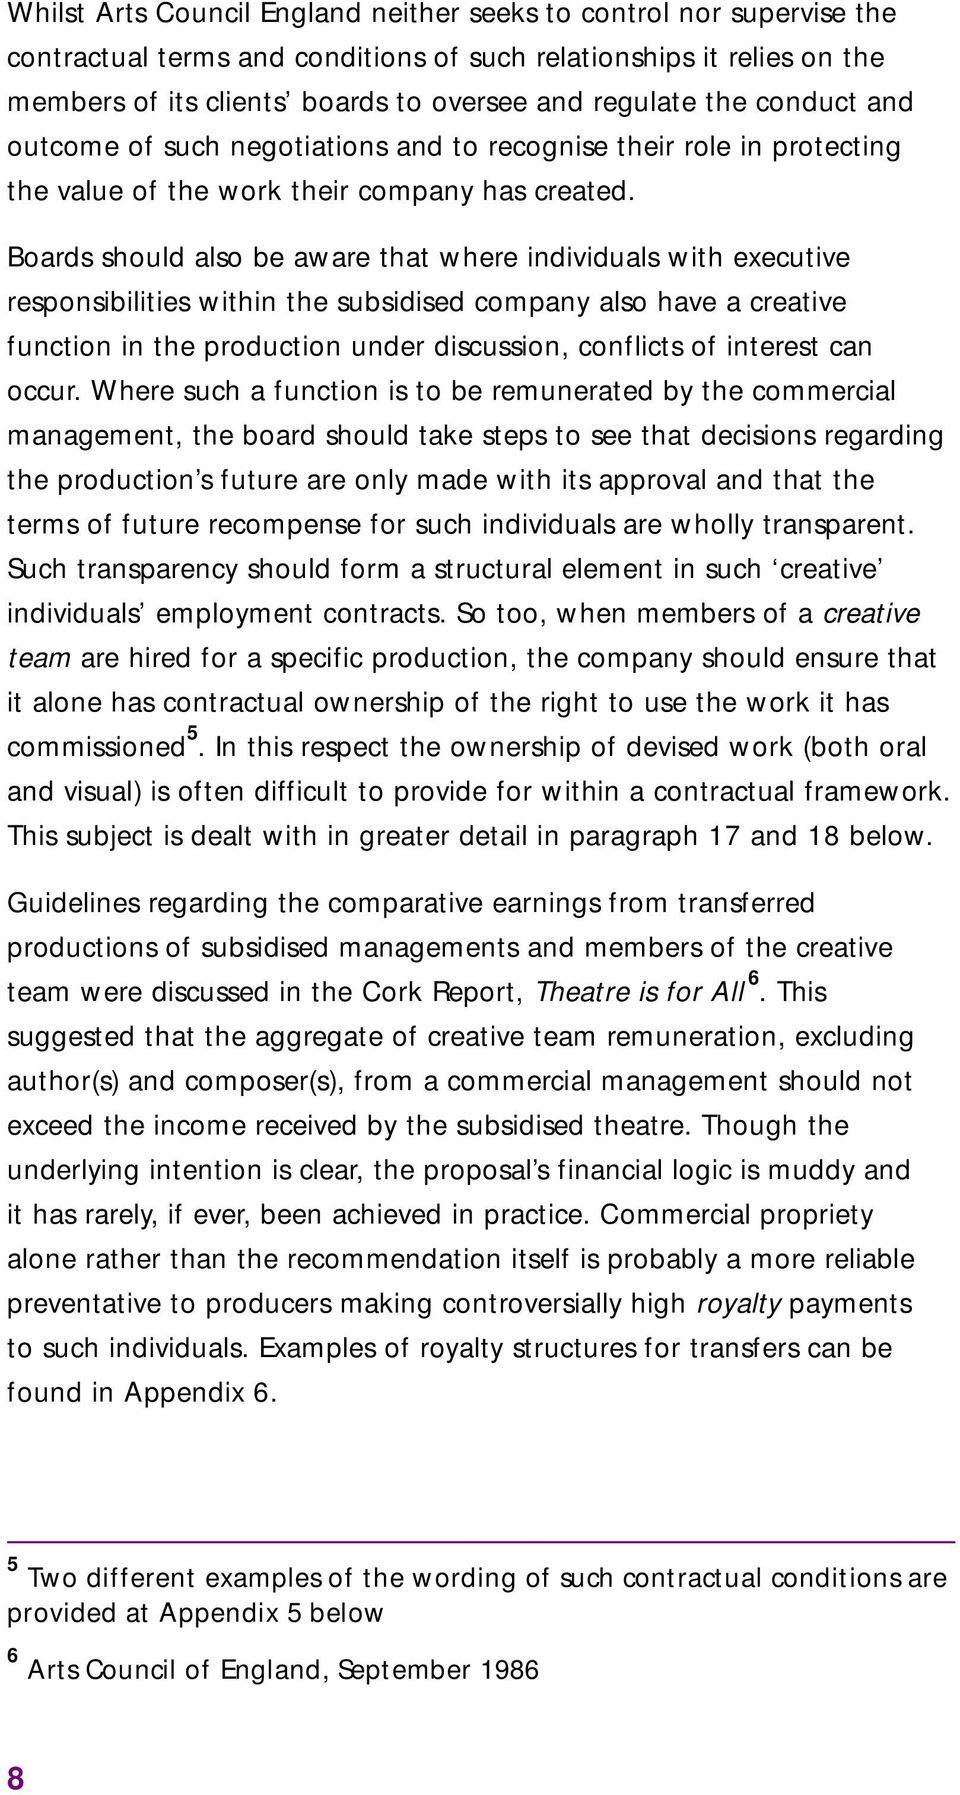 Boards should also be aware that where individuals with executive responsibilities within the subsidised company also have a creative function in the production under discussion, conflicts of